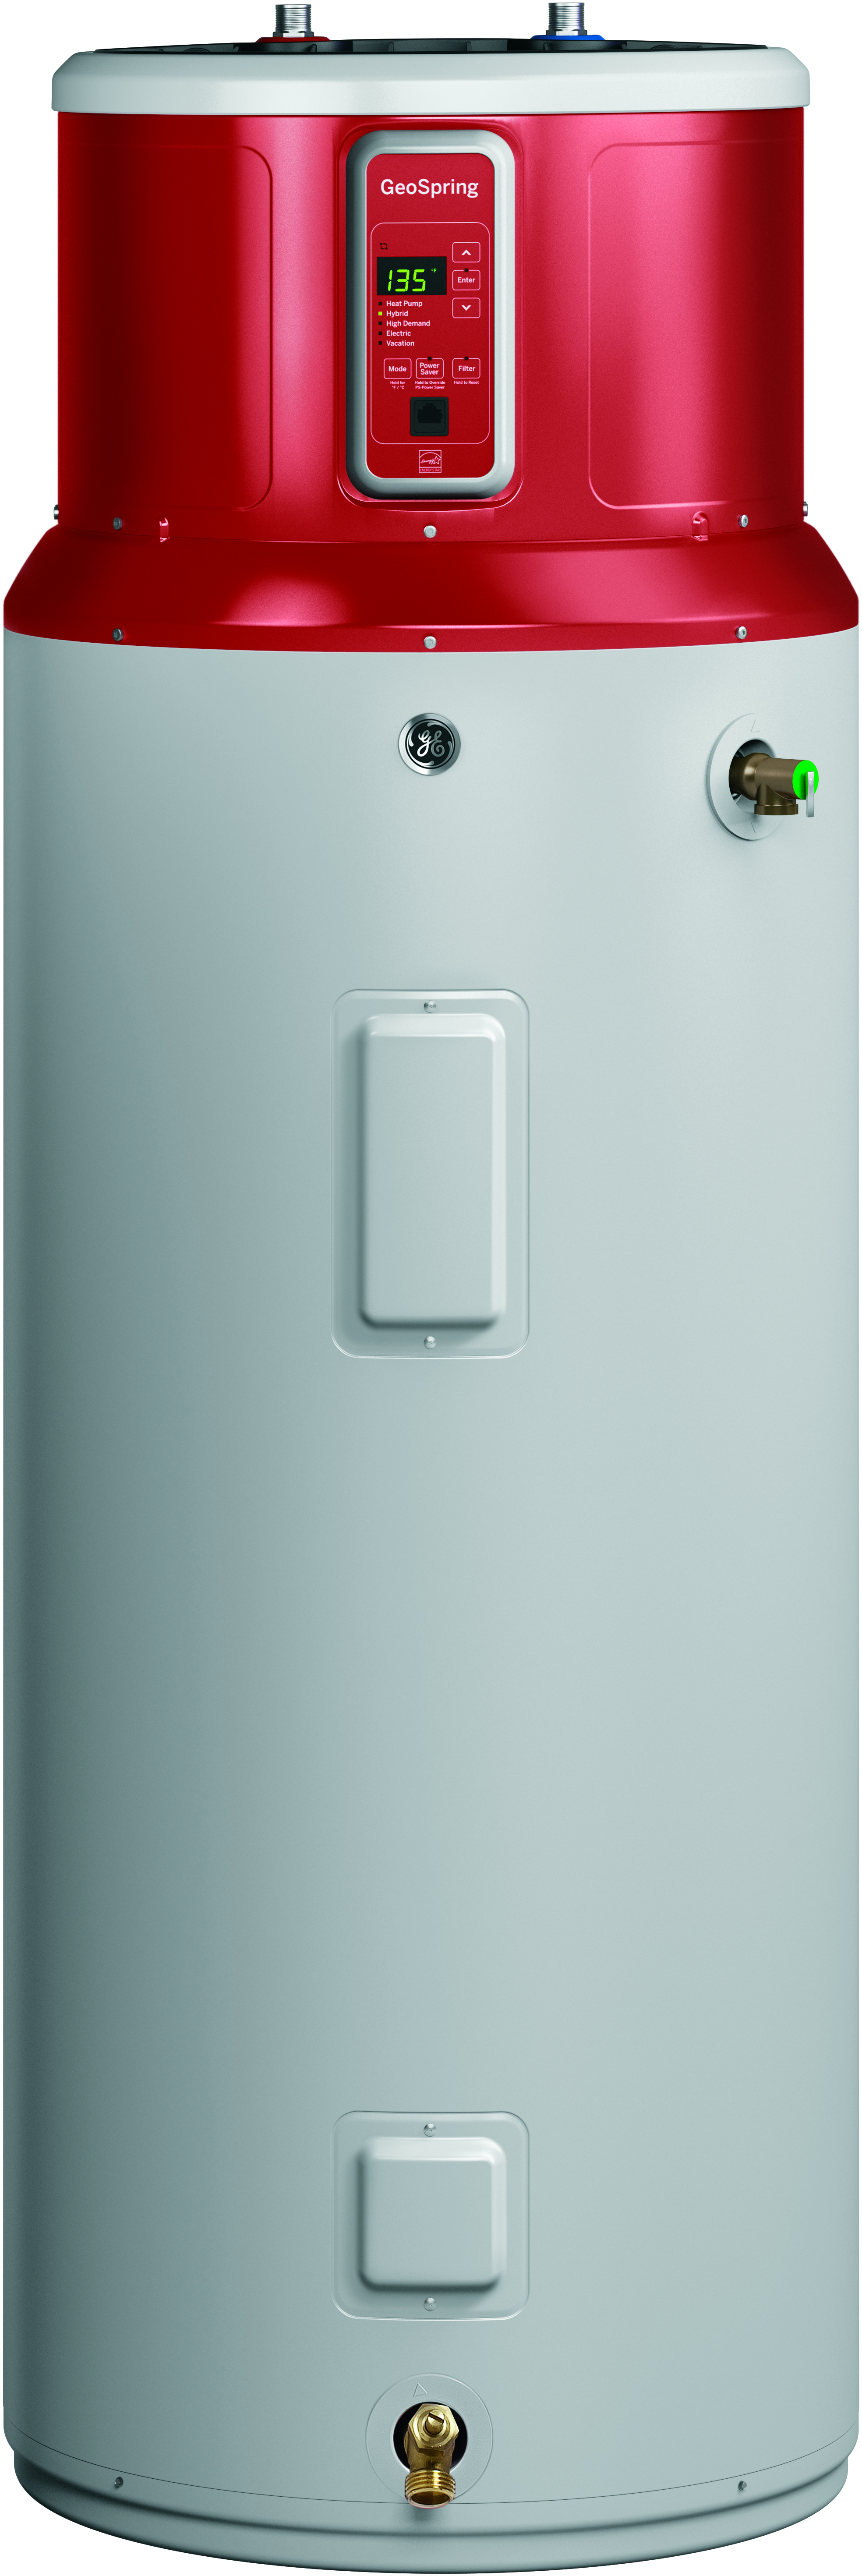 GE Introduces 80-Gallon GeoSpring™ Hybrid Electric Water Heater ...